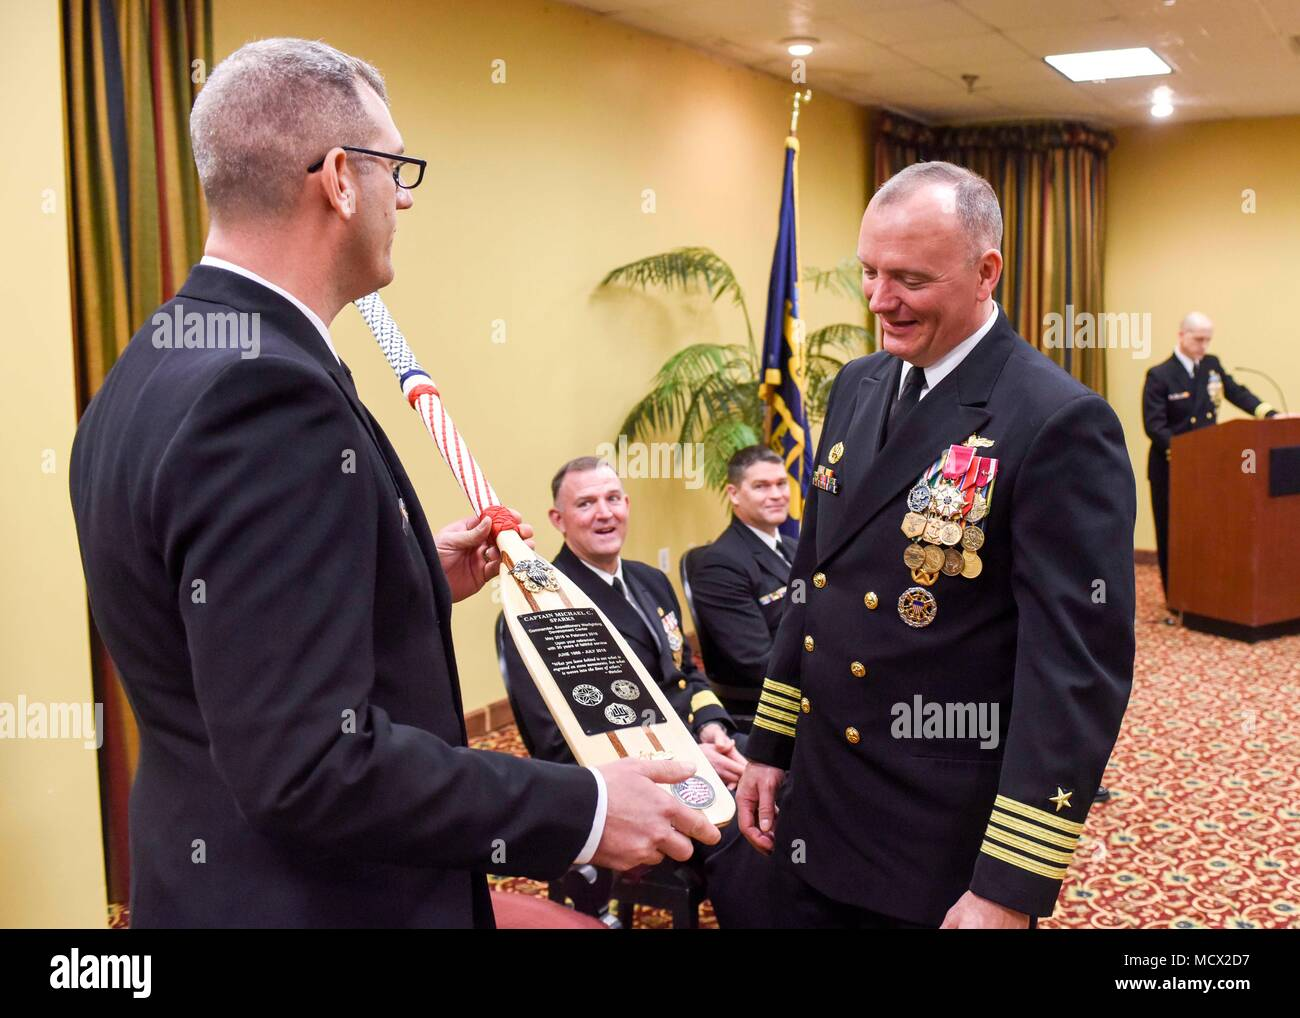 180223-N-YN937-106 VIRGINIA Beach, Va. (February 23, 2018) – Capt. Michael Sparks, commander, Navy Expeditionary Warfighting Development Center, (right) receives a gift from Senior Chief Utilitiesman Shawn Flynn during his change of command and retirement ceremony at Naval Air Station Oceana Dam Neck Annex. Navy Expeditionary Combat Command enables Navy Expeditionary Combat Forces to execute combat, combat support, and combat service support missions across the full spectrum of naval, joint, and combined operations which enable access for the sea and freedom of action throughout the sea-to-sho - Stock Image